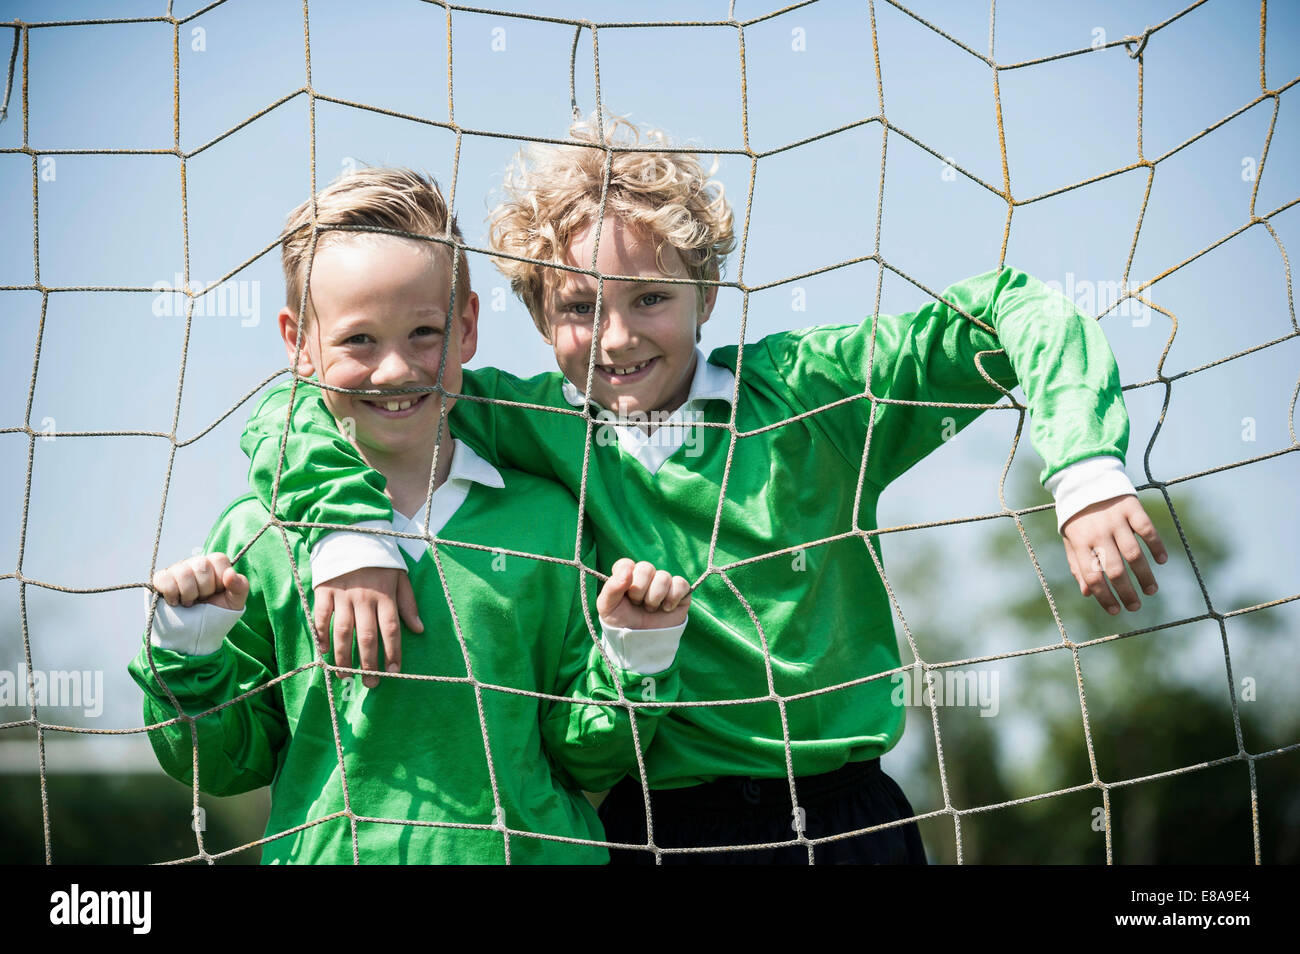 Two young football players posing in goal - Stock Image